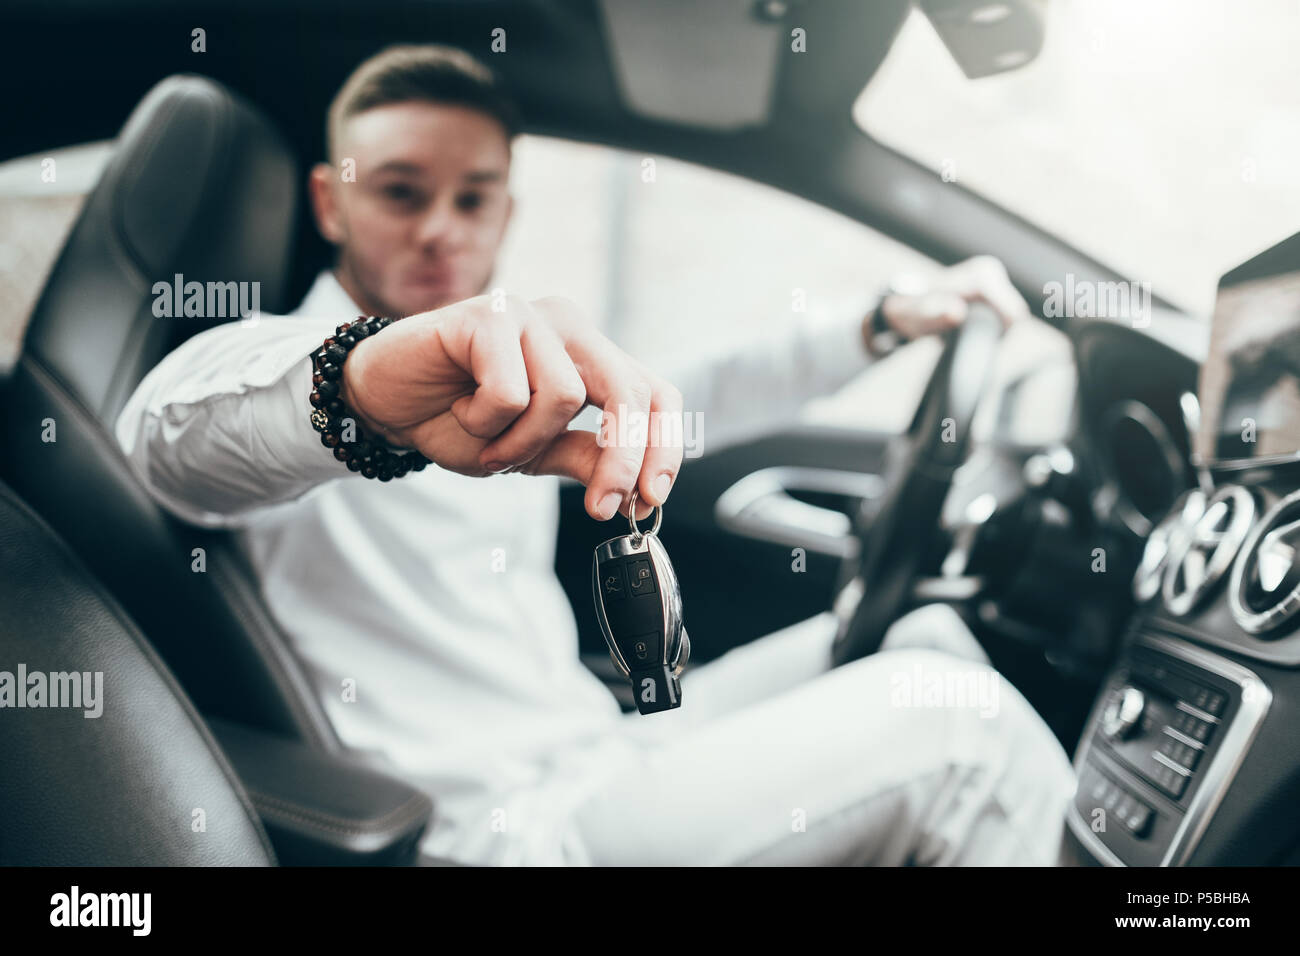 Handsome Young Man Showing Car Keys In His Newly Bought Auto Sitting In The Luxury Vehicle Stock Photo Alamy